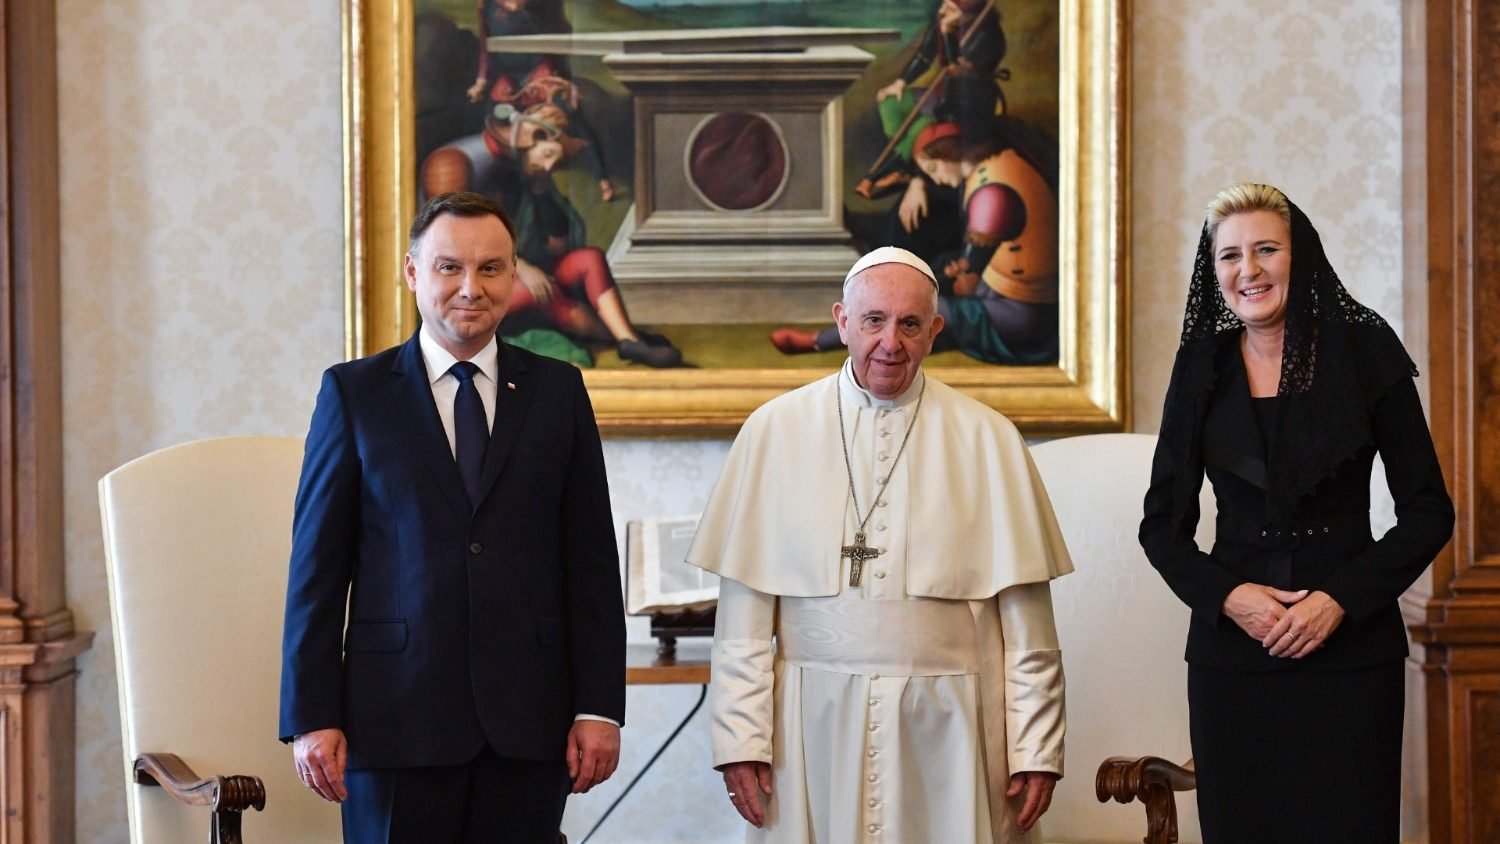 Pope Francis meets Polish President in the Vatican